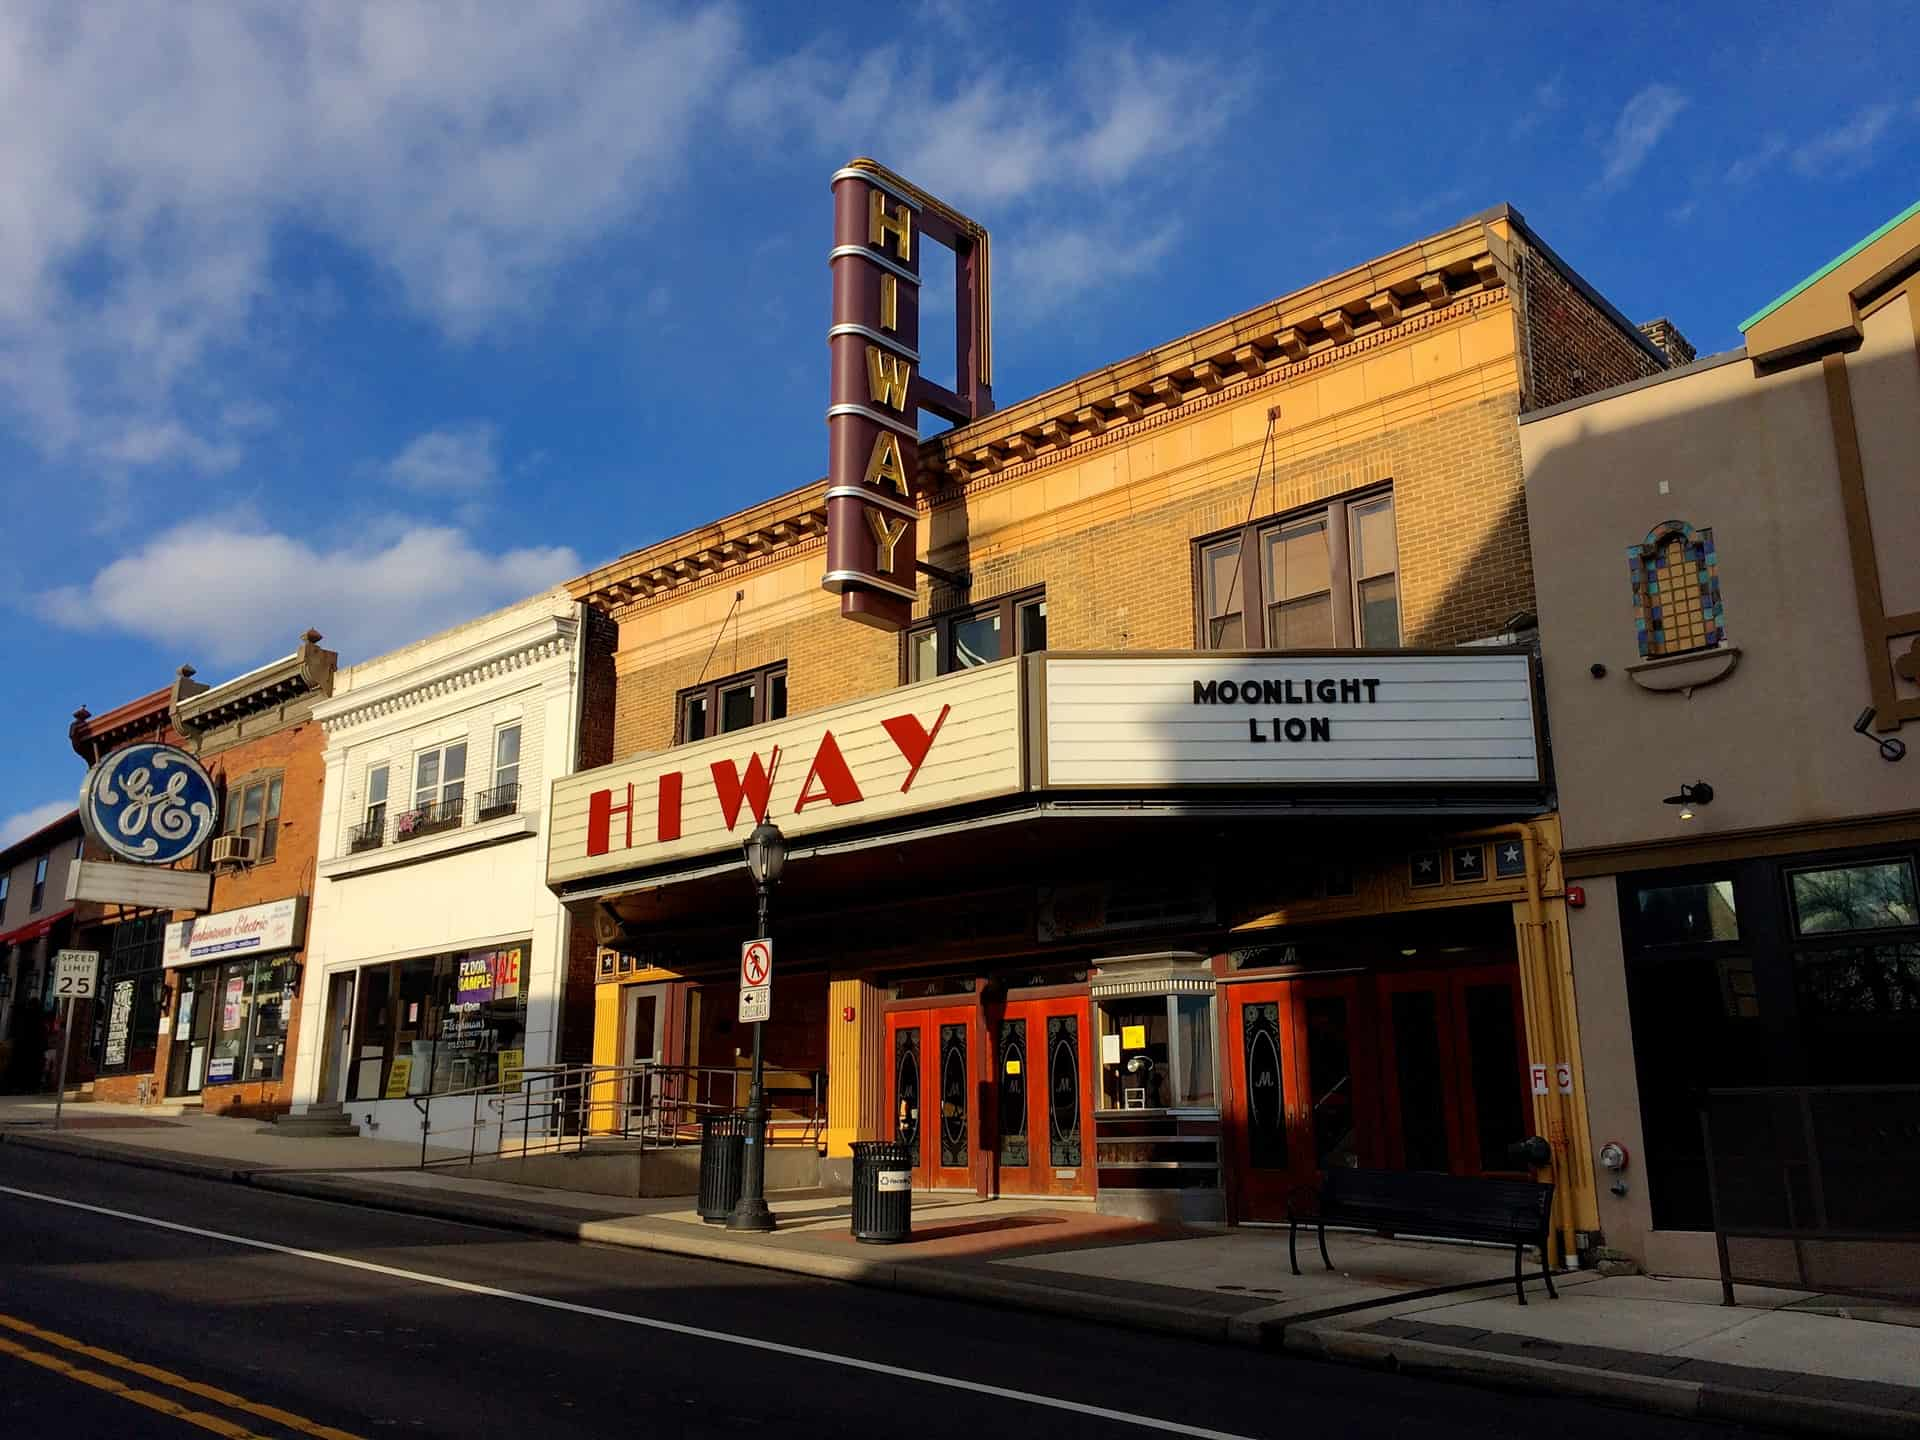 Hiway Theater Jenkintown PA - Pennsylvania - Retro Roadmap 2017